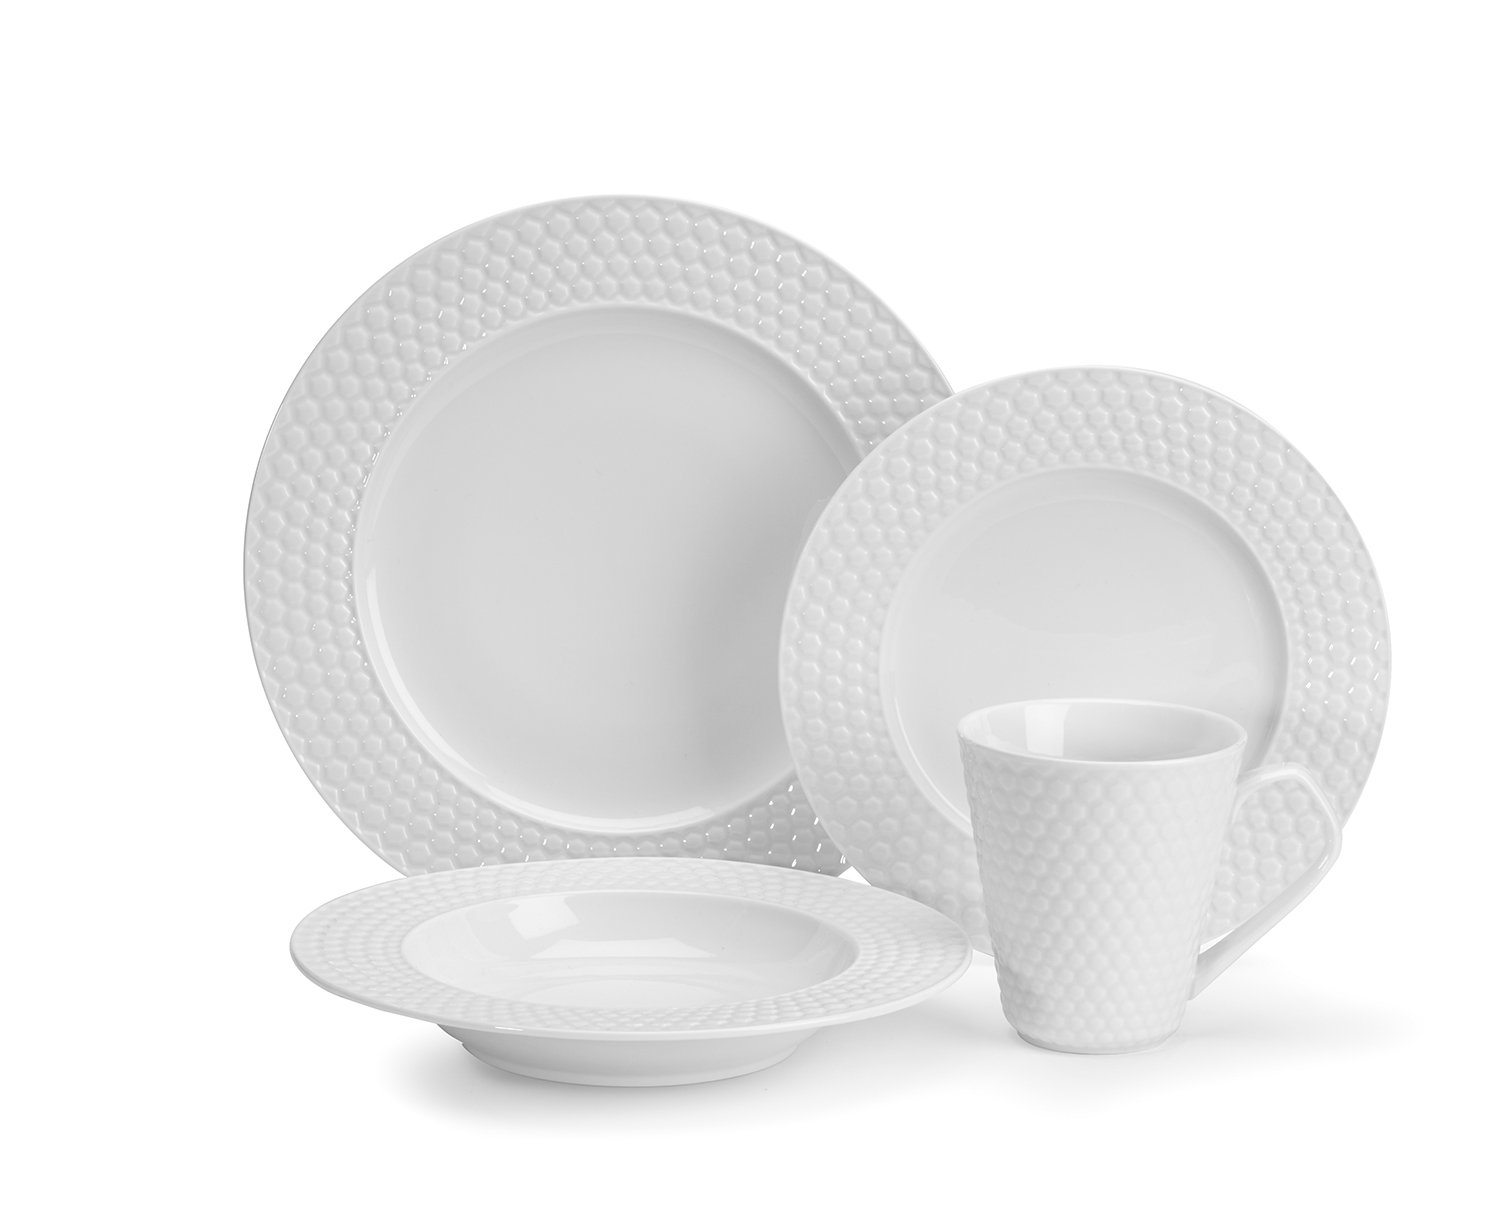 Amazon.com Cuisinart CDP01-S4WC Chailles Collection 16-Piece Porcelain Dinnerware Set Kitchen u0026 Dining  sc 1 st  Amazon.com & Amazon.com: Cuisinart CDP01-S4WC Chailles Collection 16-Piece ...